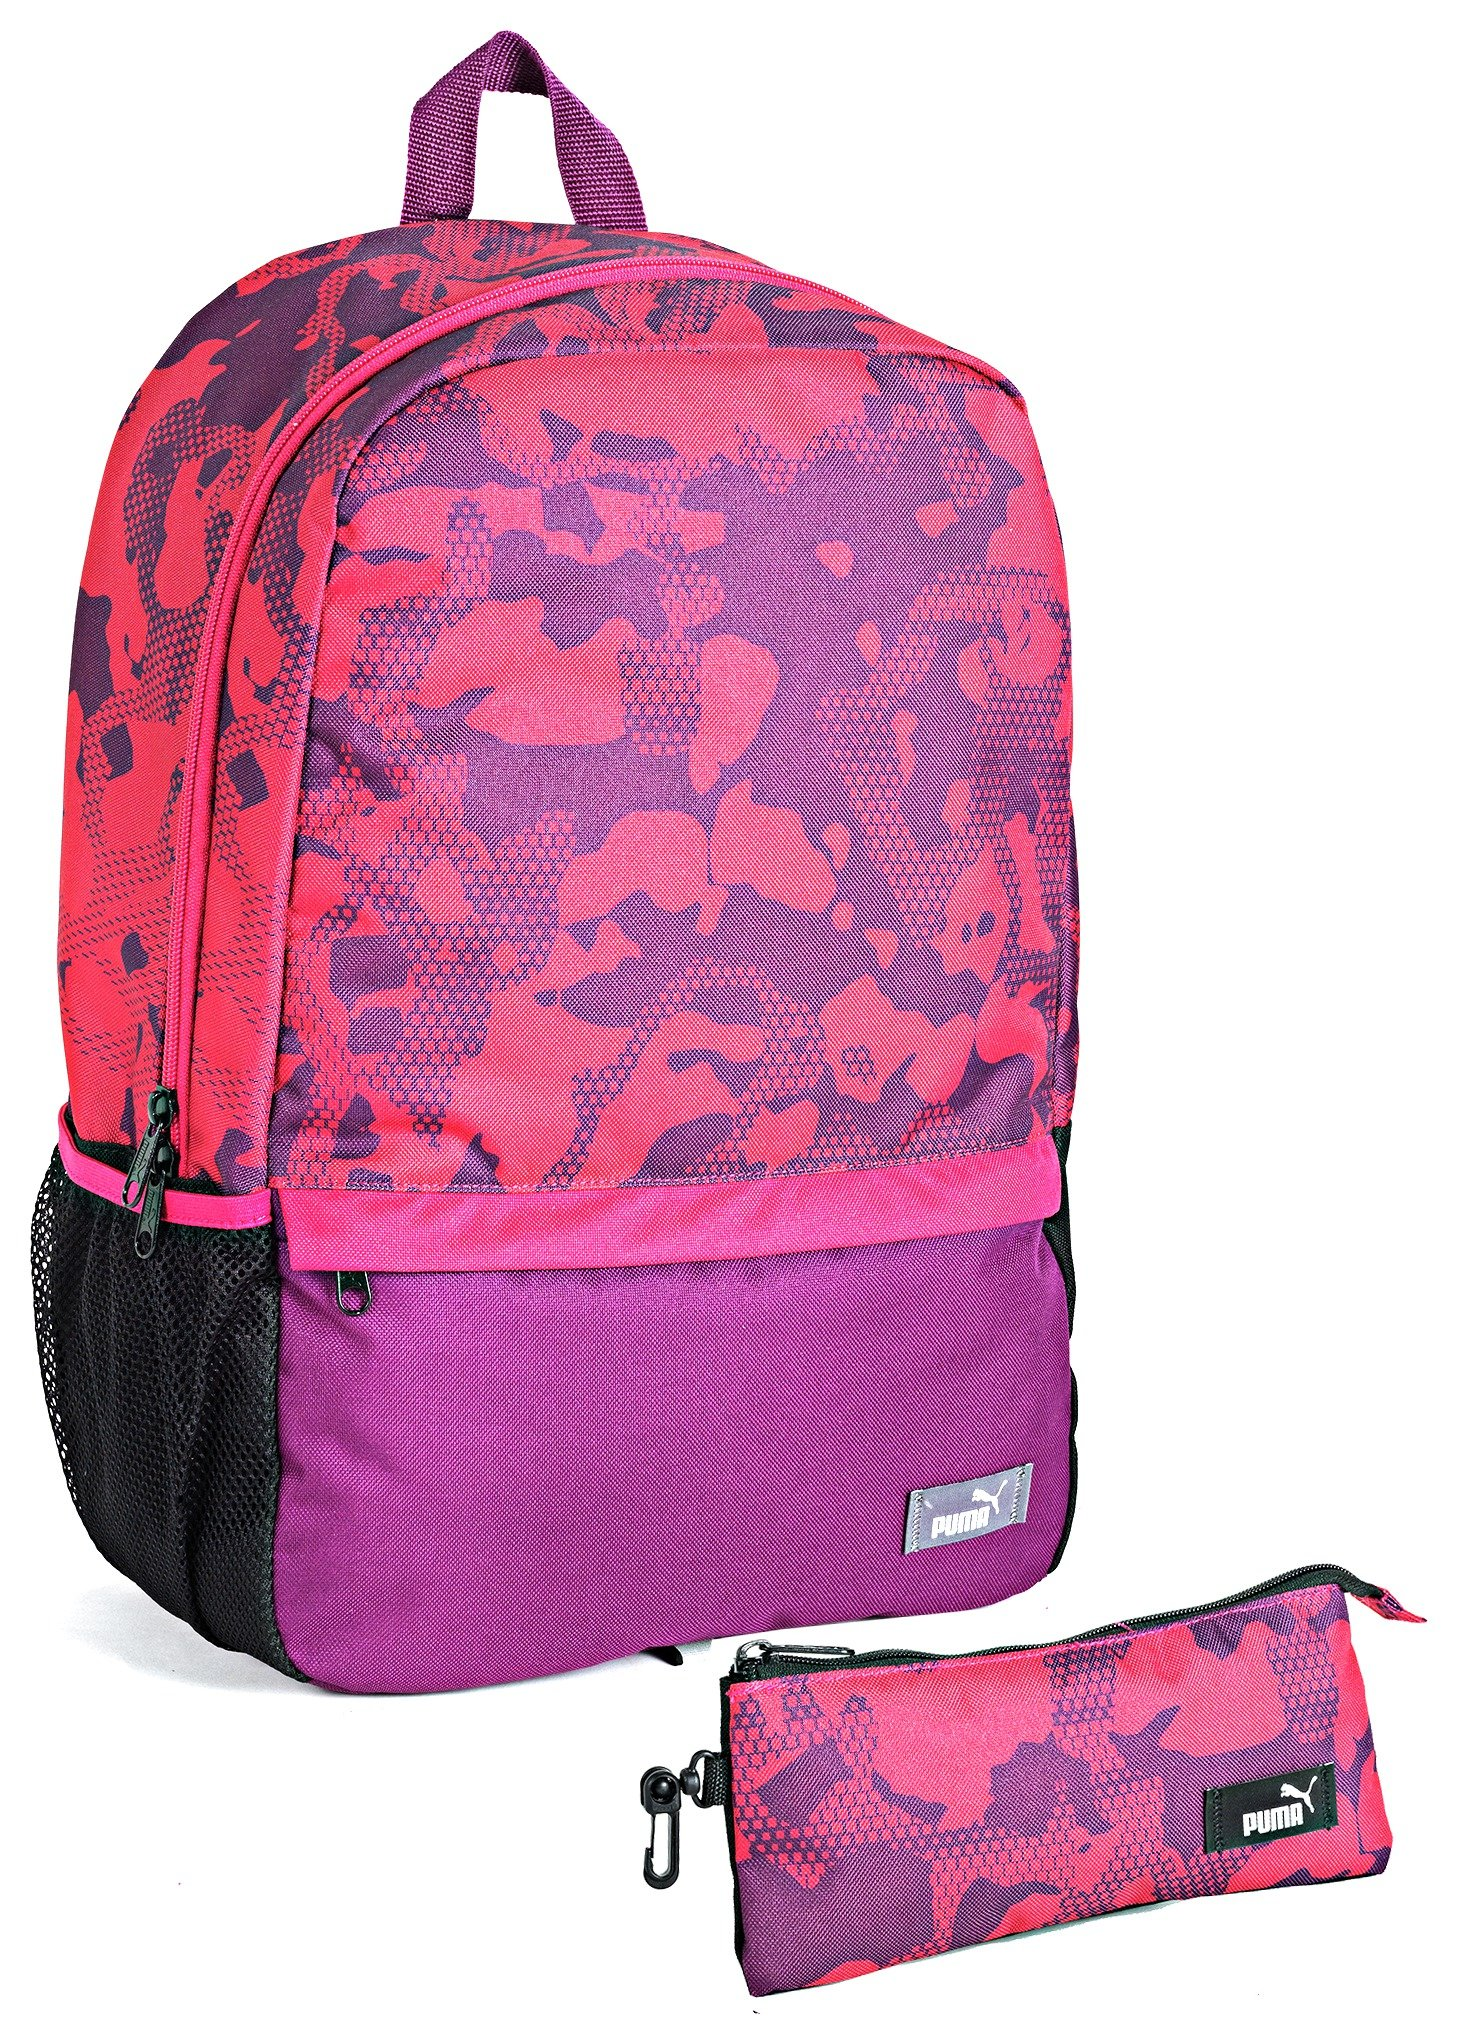 Puma Backpack and Pencil Case - Pink lowest price